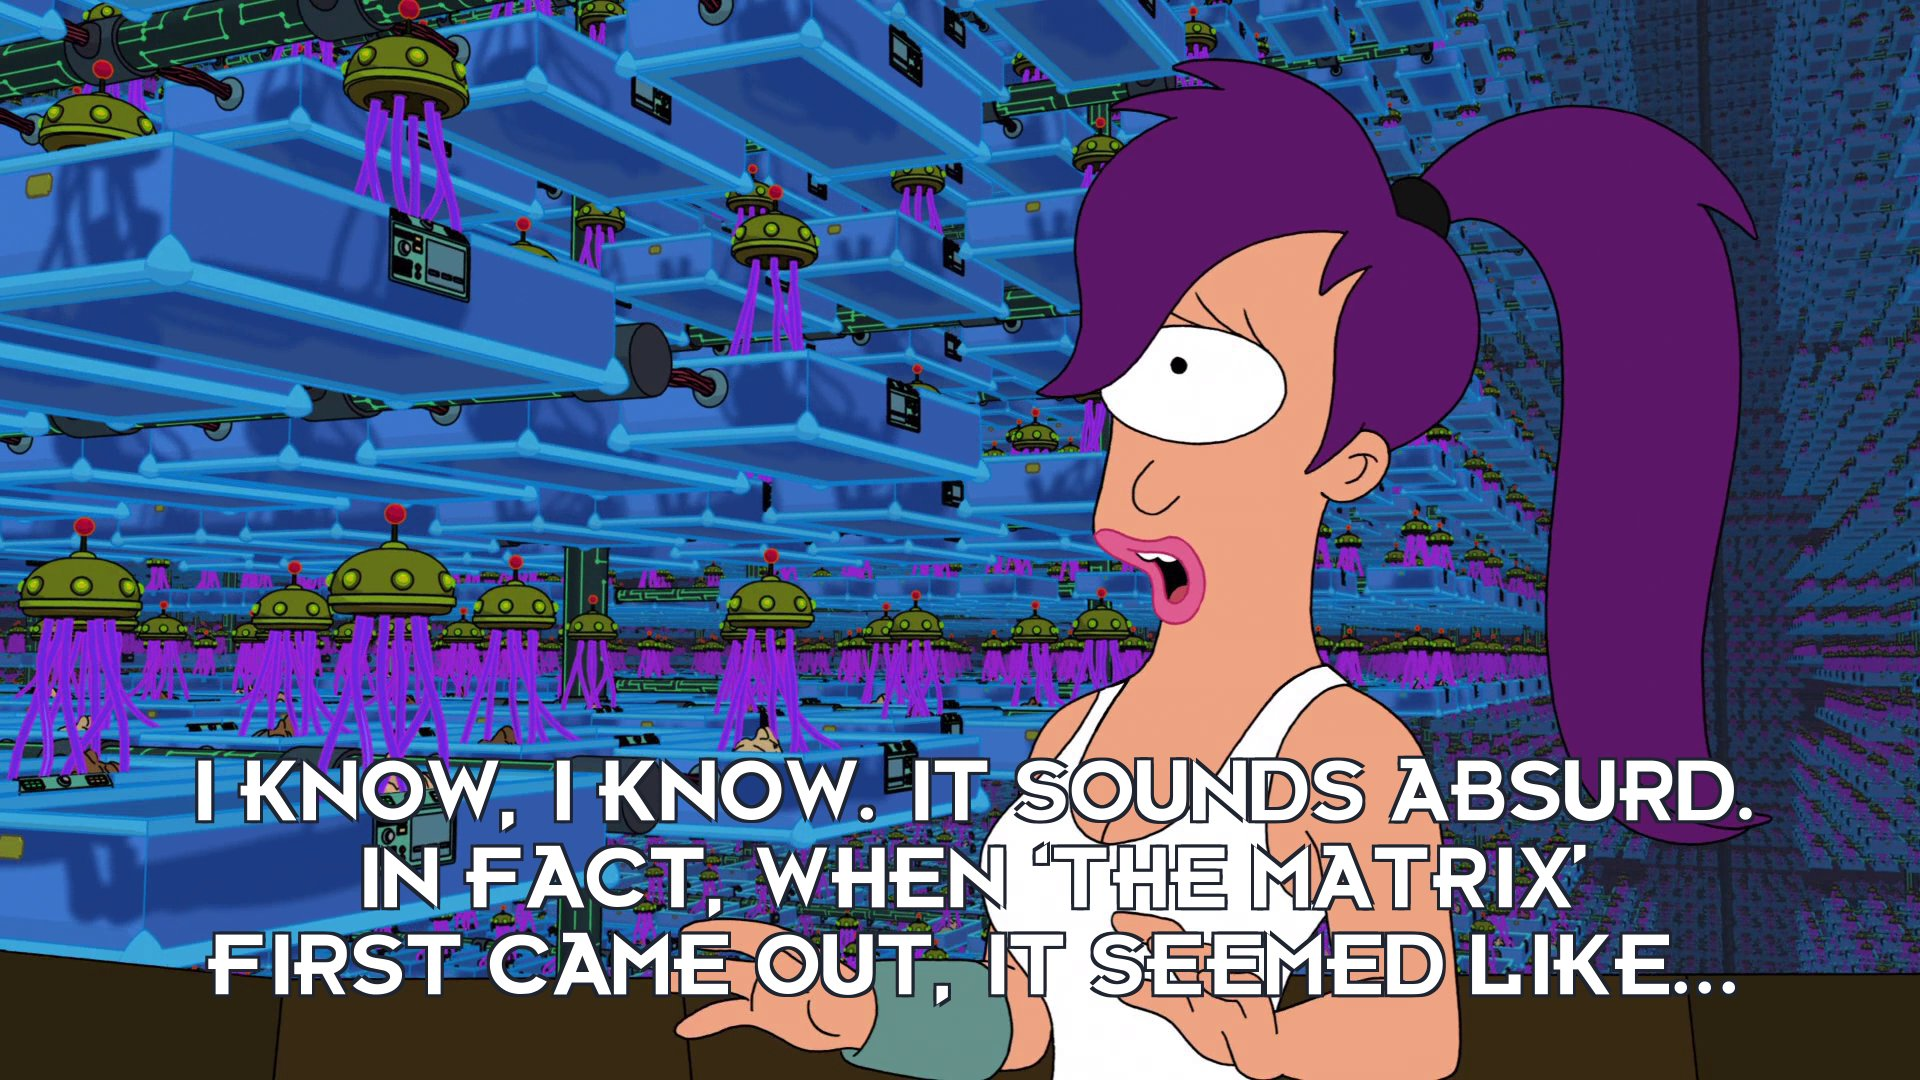 Turanga Leela: I know, I know. It sounds absurd. In fact, when 'The Matrix' first came out, it seemed like...